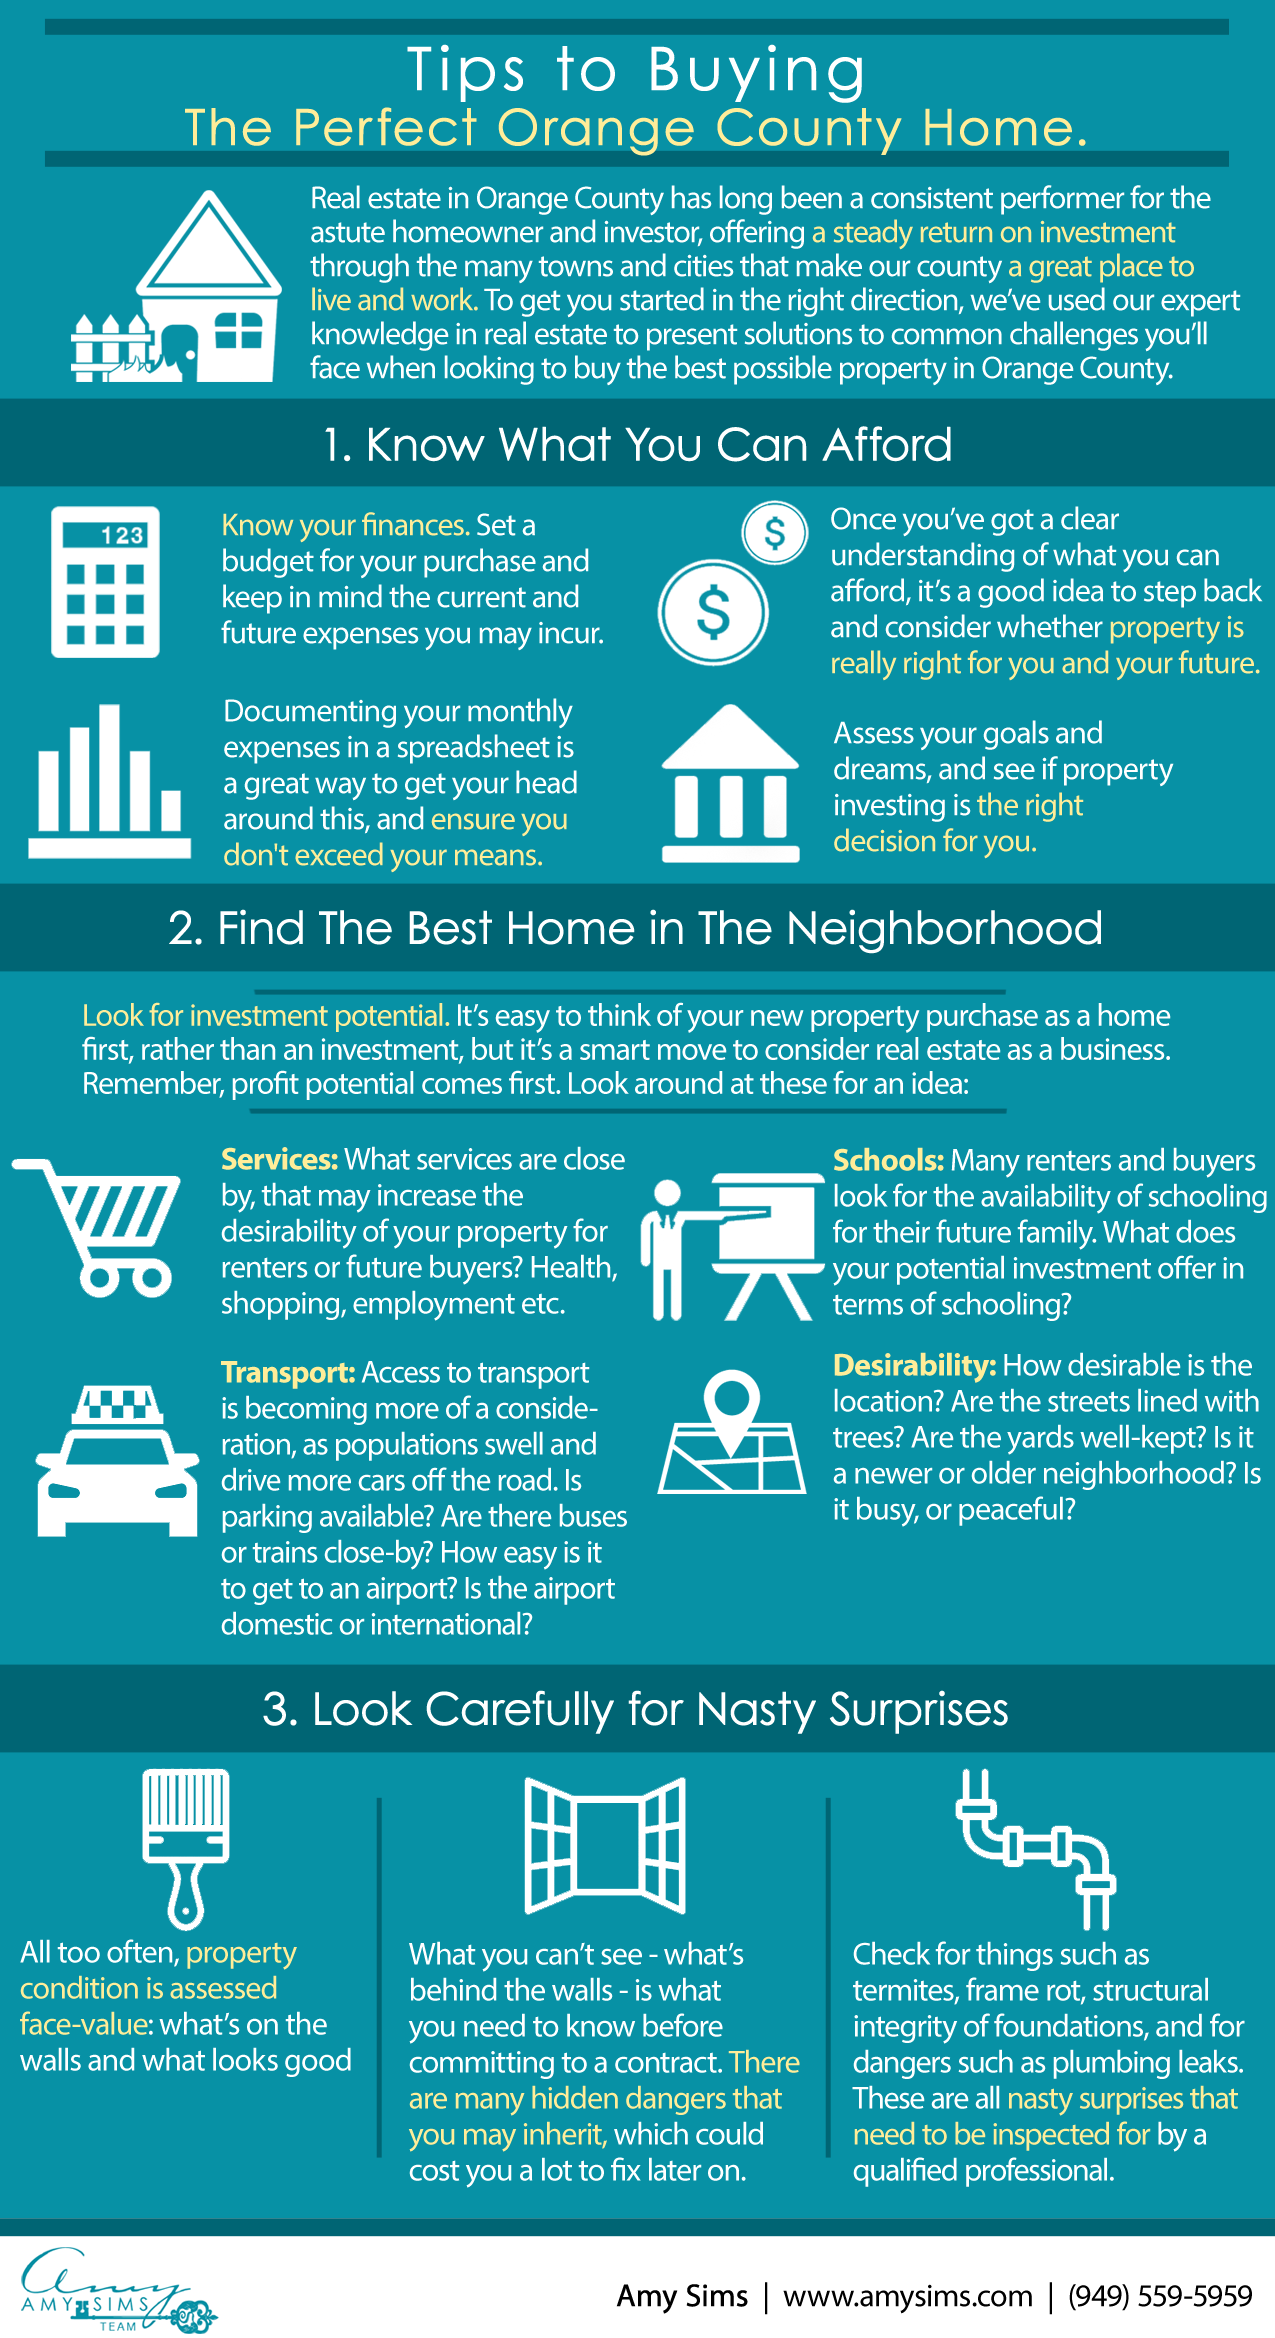 Tips to Buying The Perfect Orange County Home Image